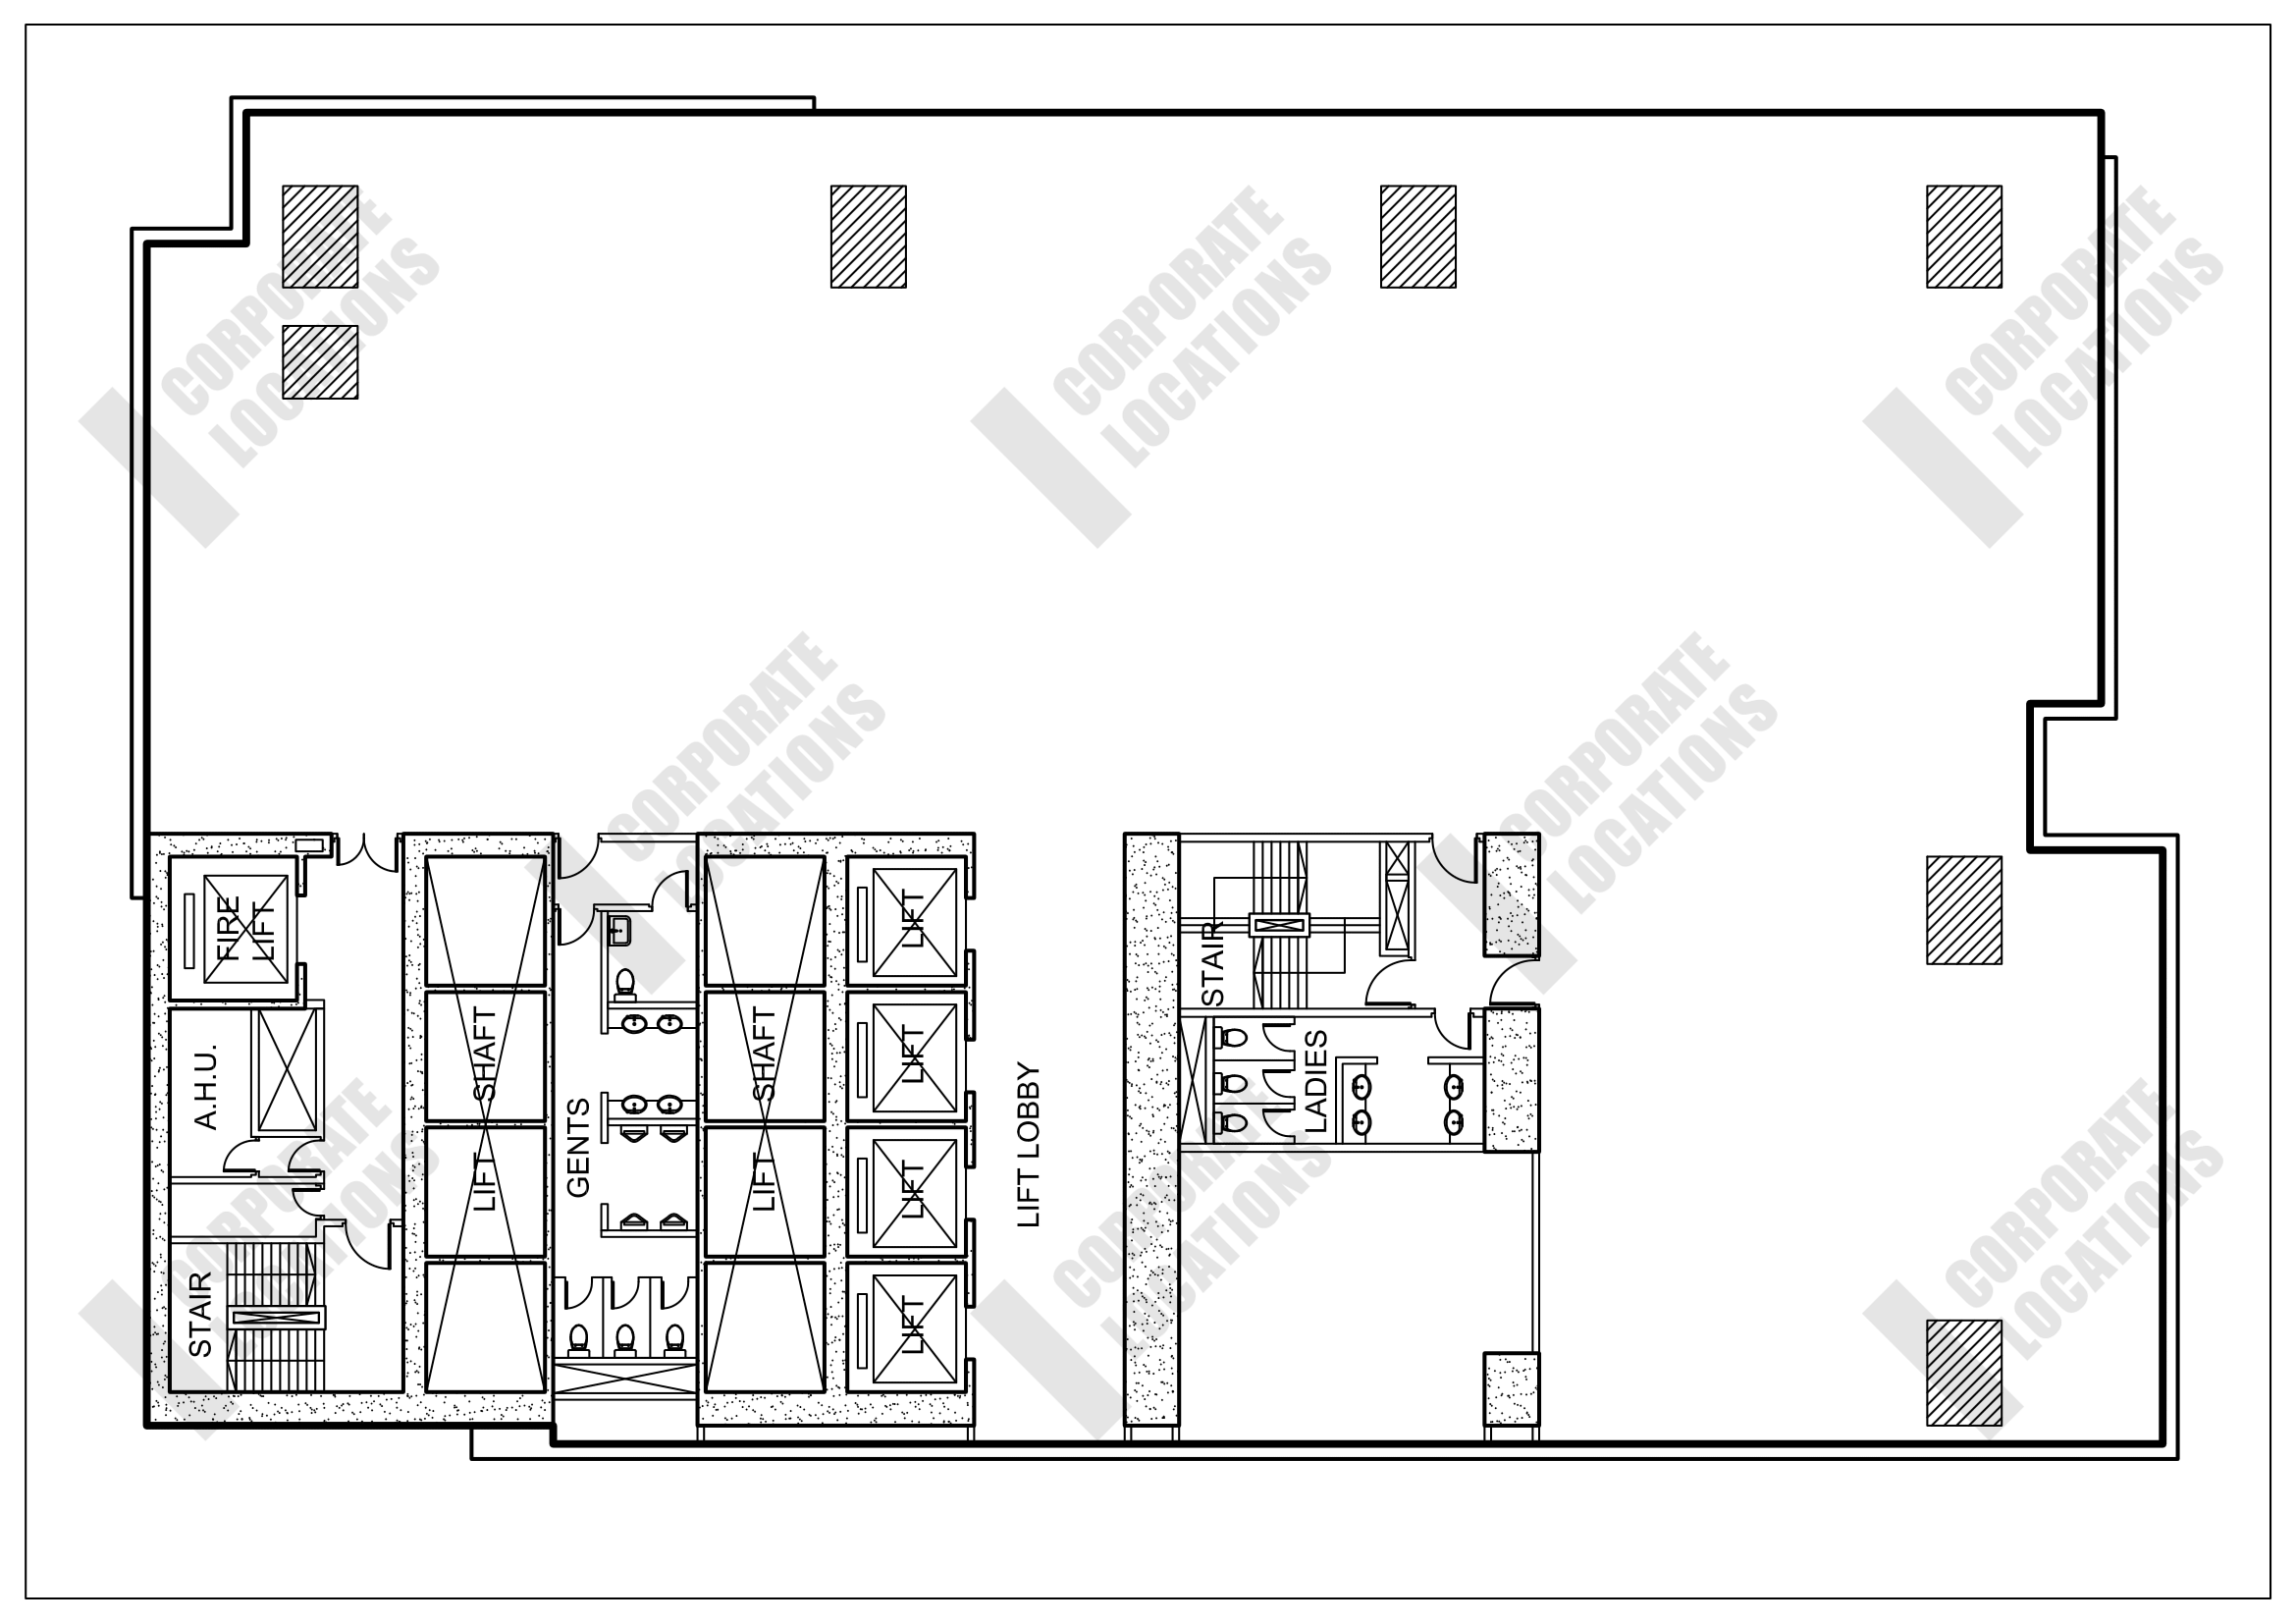 Floorplan Oxford House, Taikoo Place